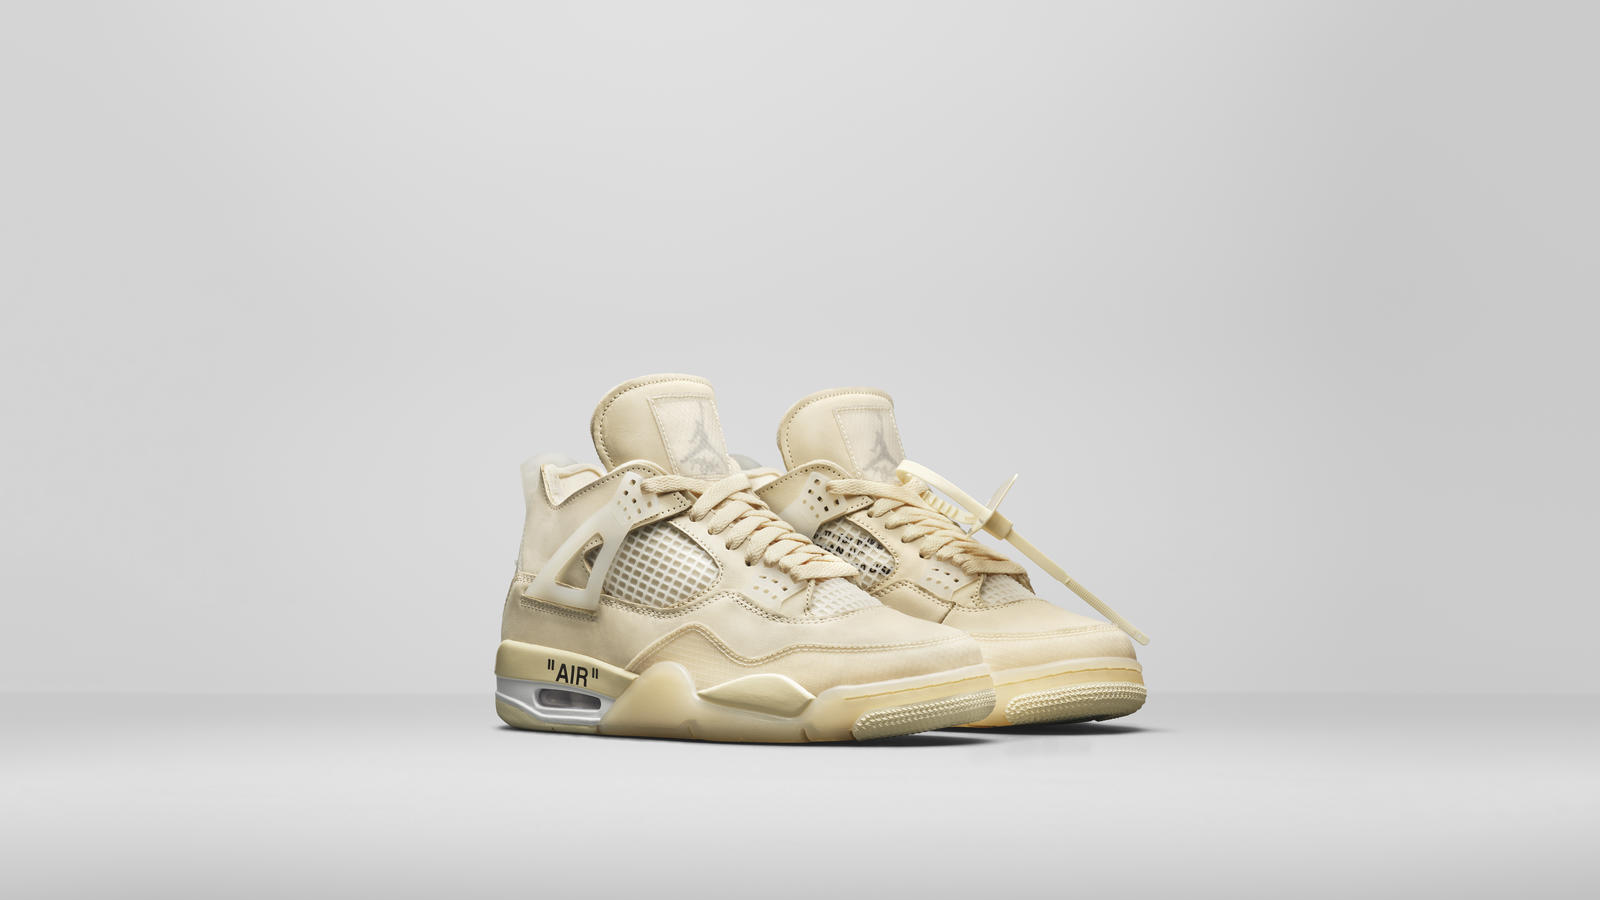 jordan-brand-virgil-abloh-women's-air-jordan-iv-x-off-white